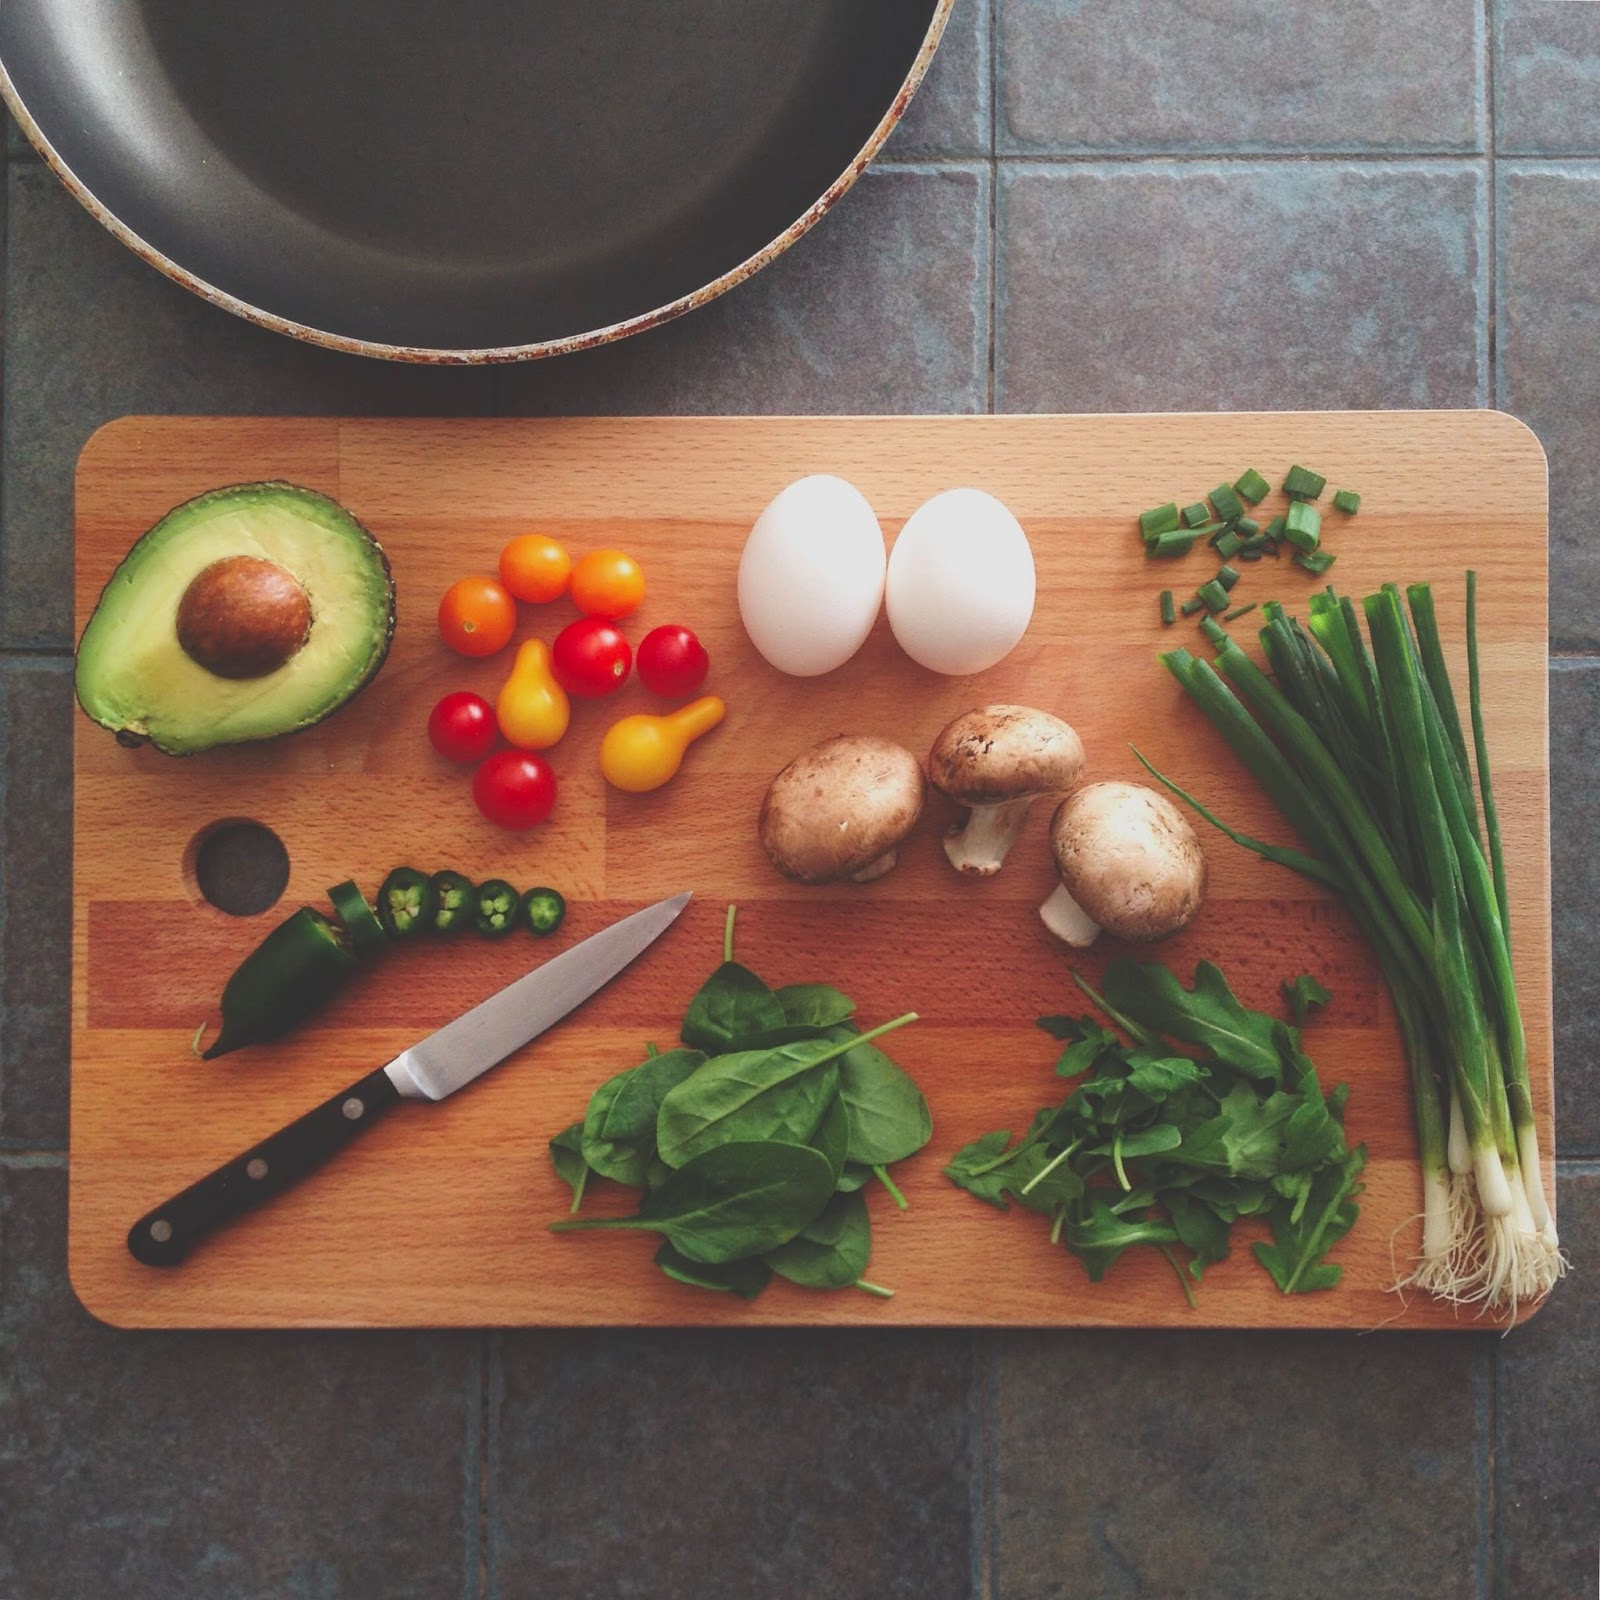 A cutting board with different ingredients. Cooking classes make great real estate closing gifts